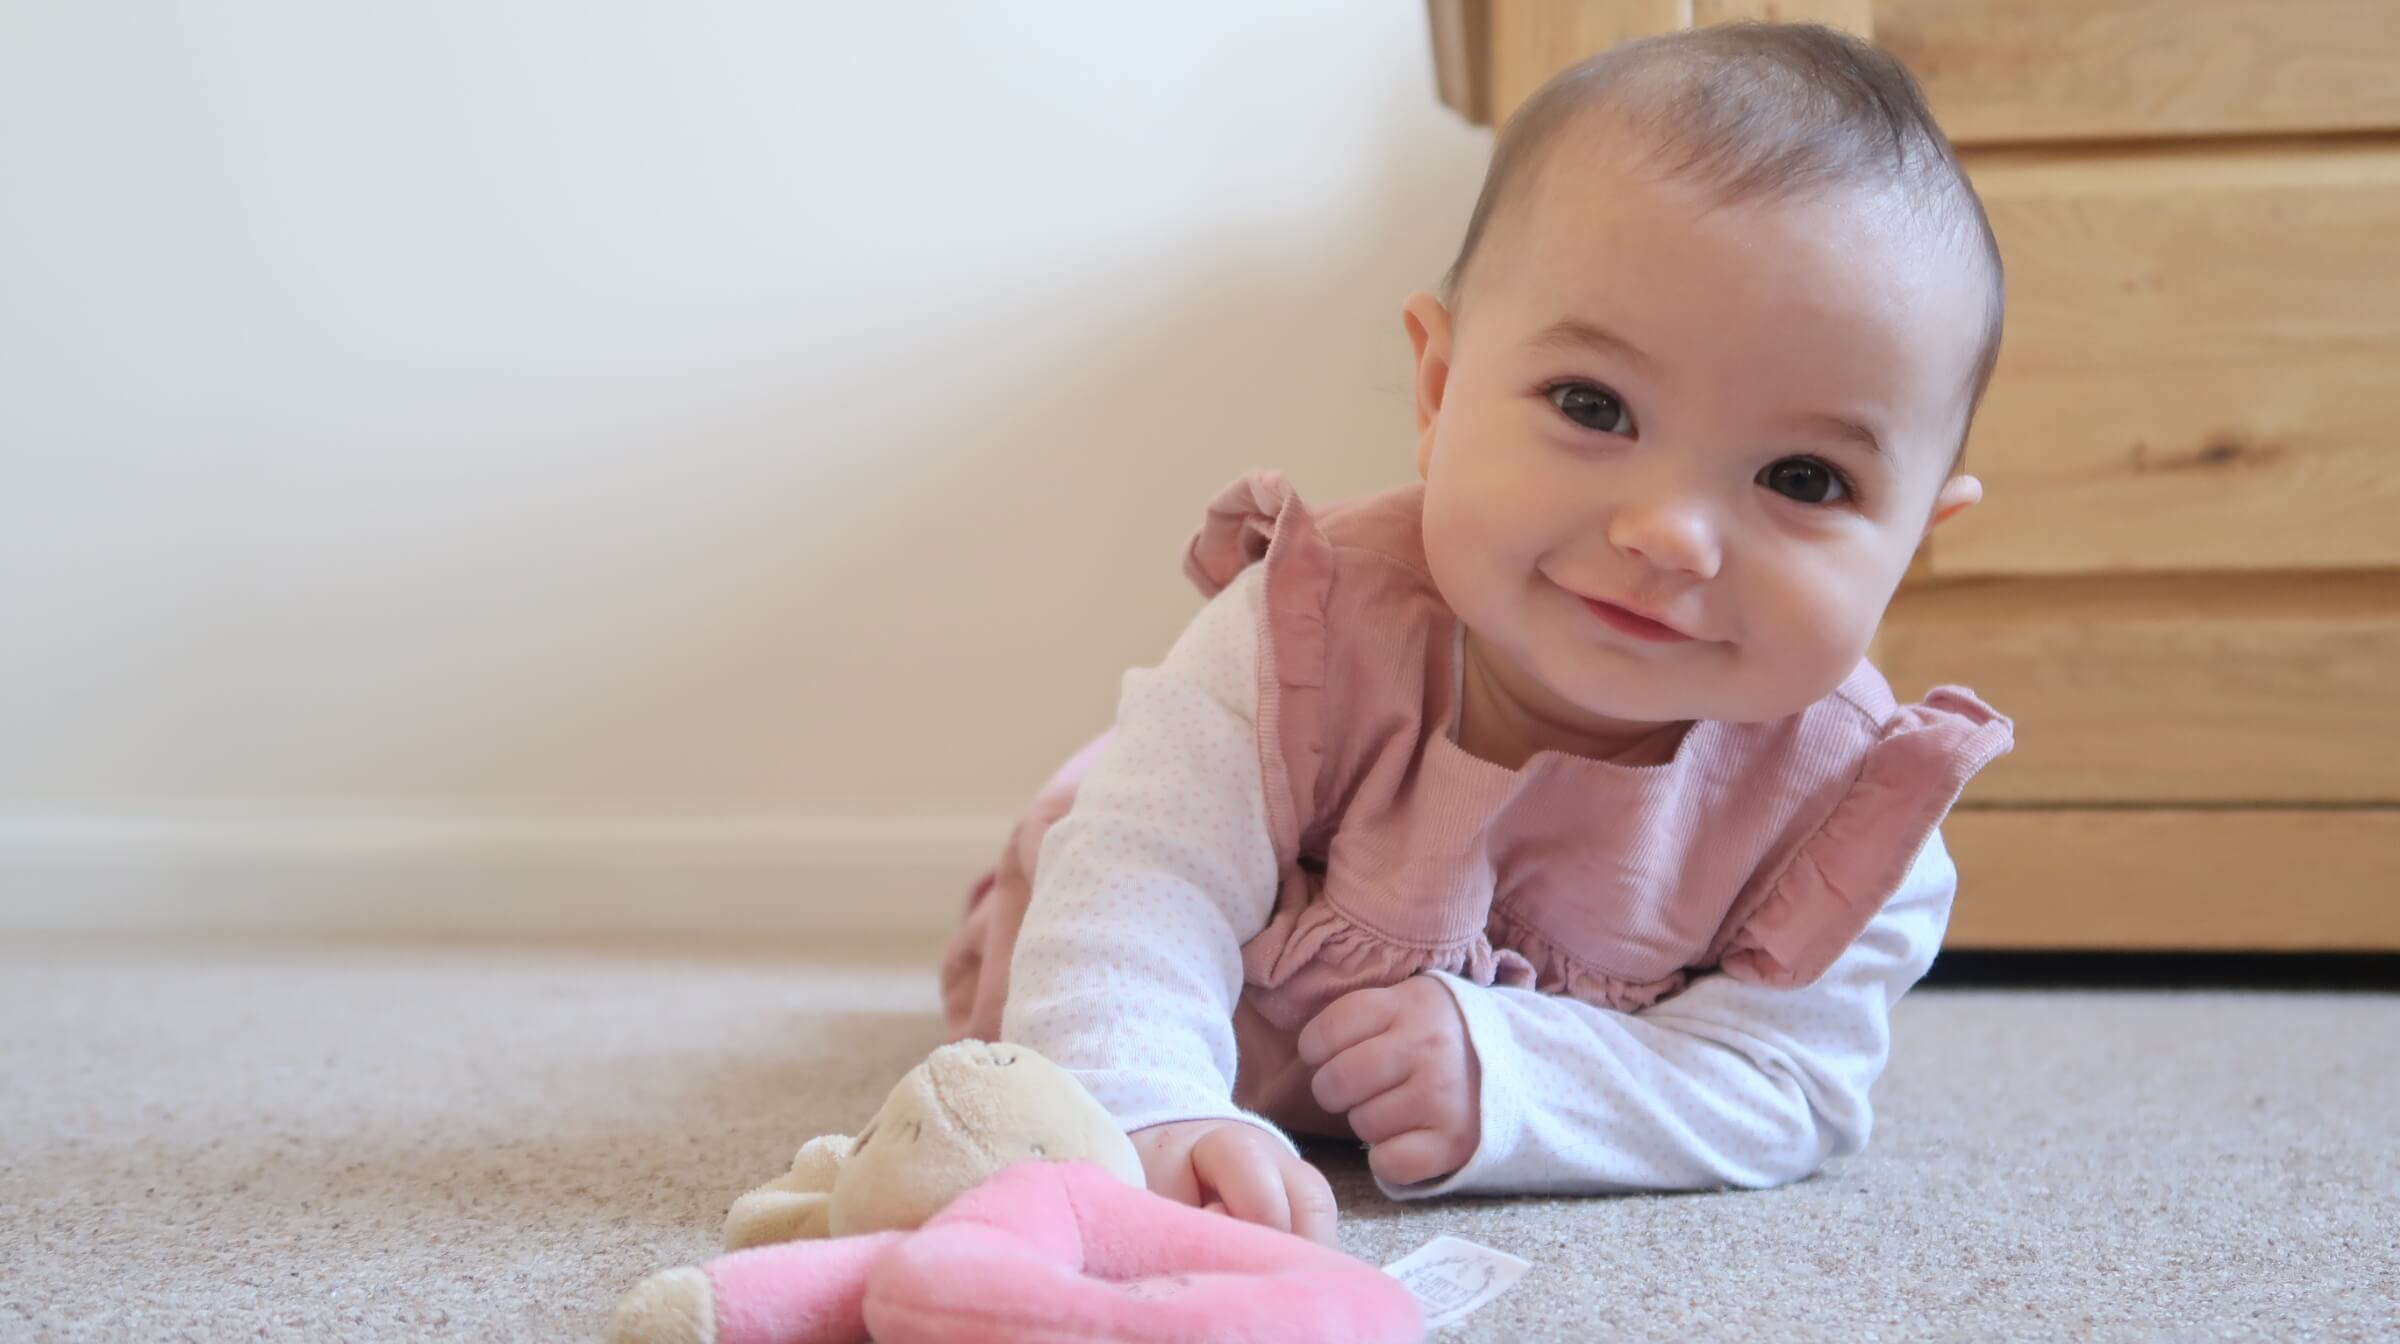 B wearing a pink dress, lying on her tummy, smiling at the camera and reaching for her plush pink rabbit rattle.